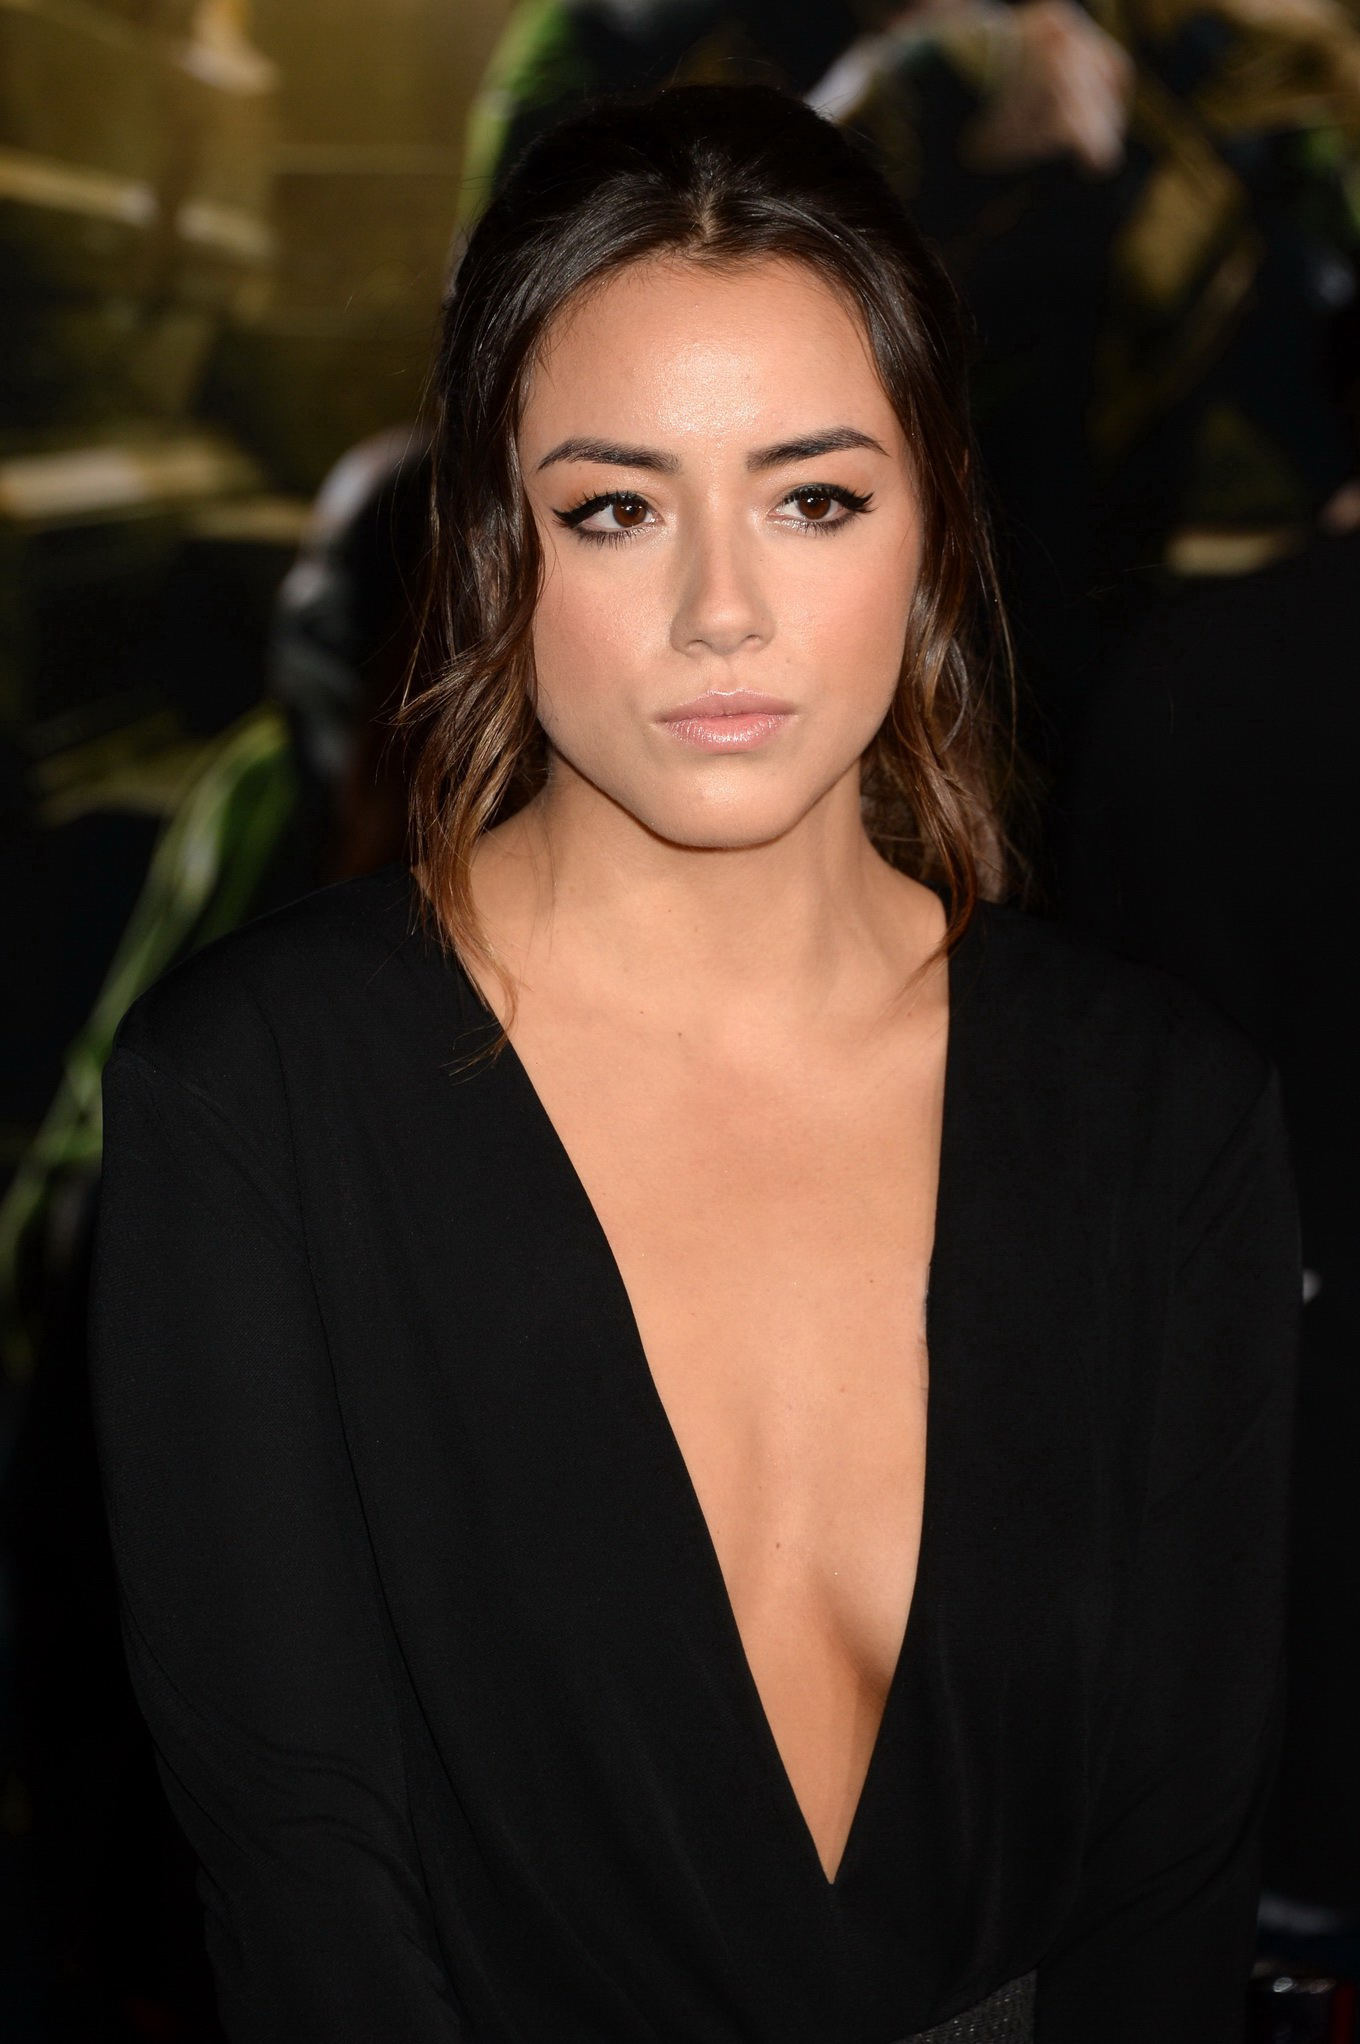 image Chloe bennet cleavage in dress